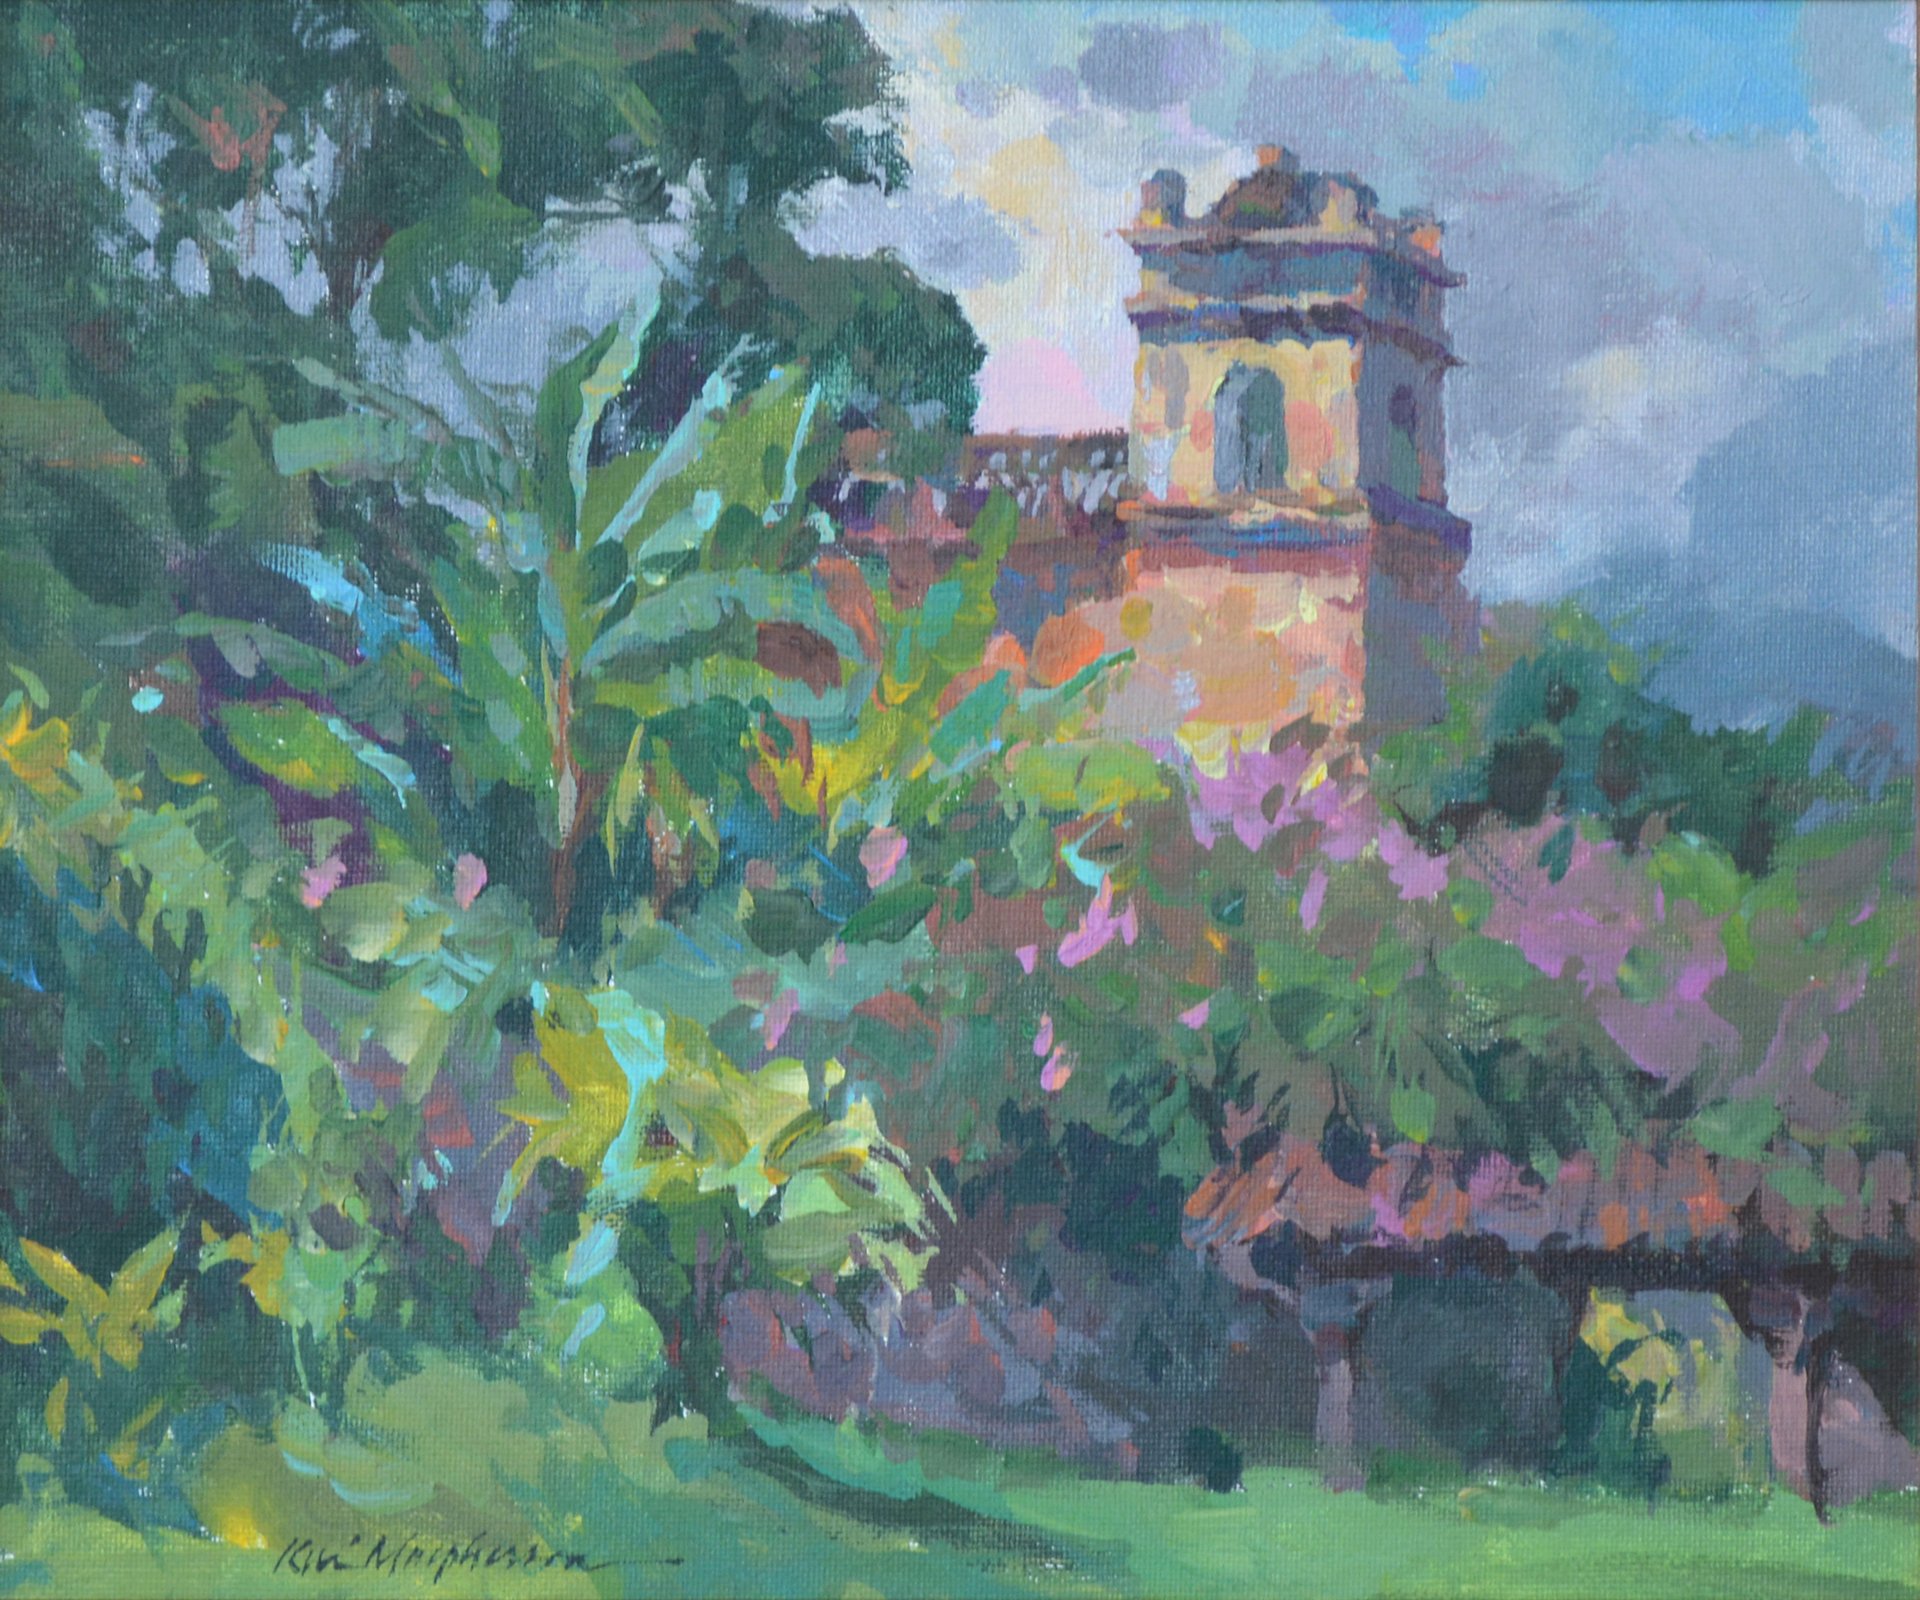 Guatemala Gardens by Kevin Macpherson